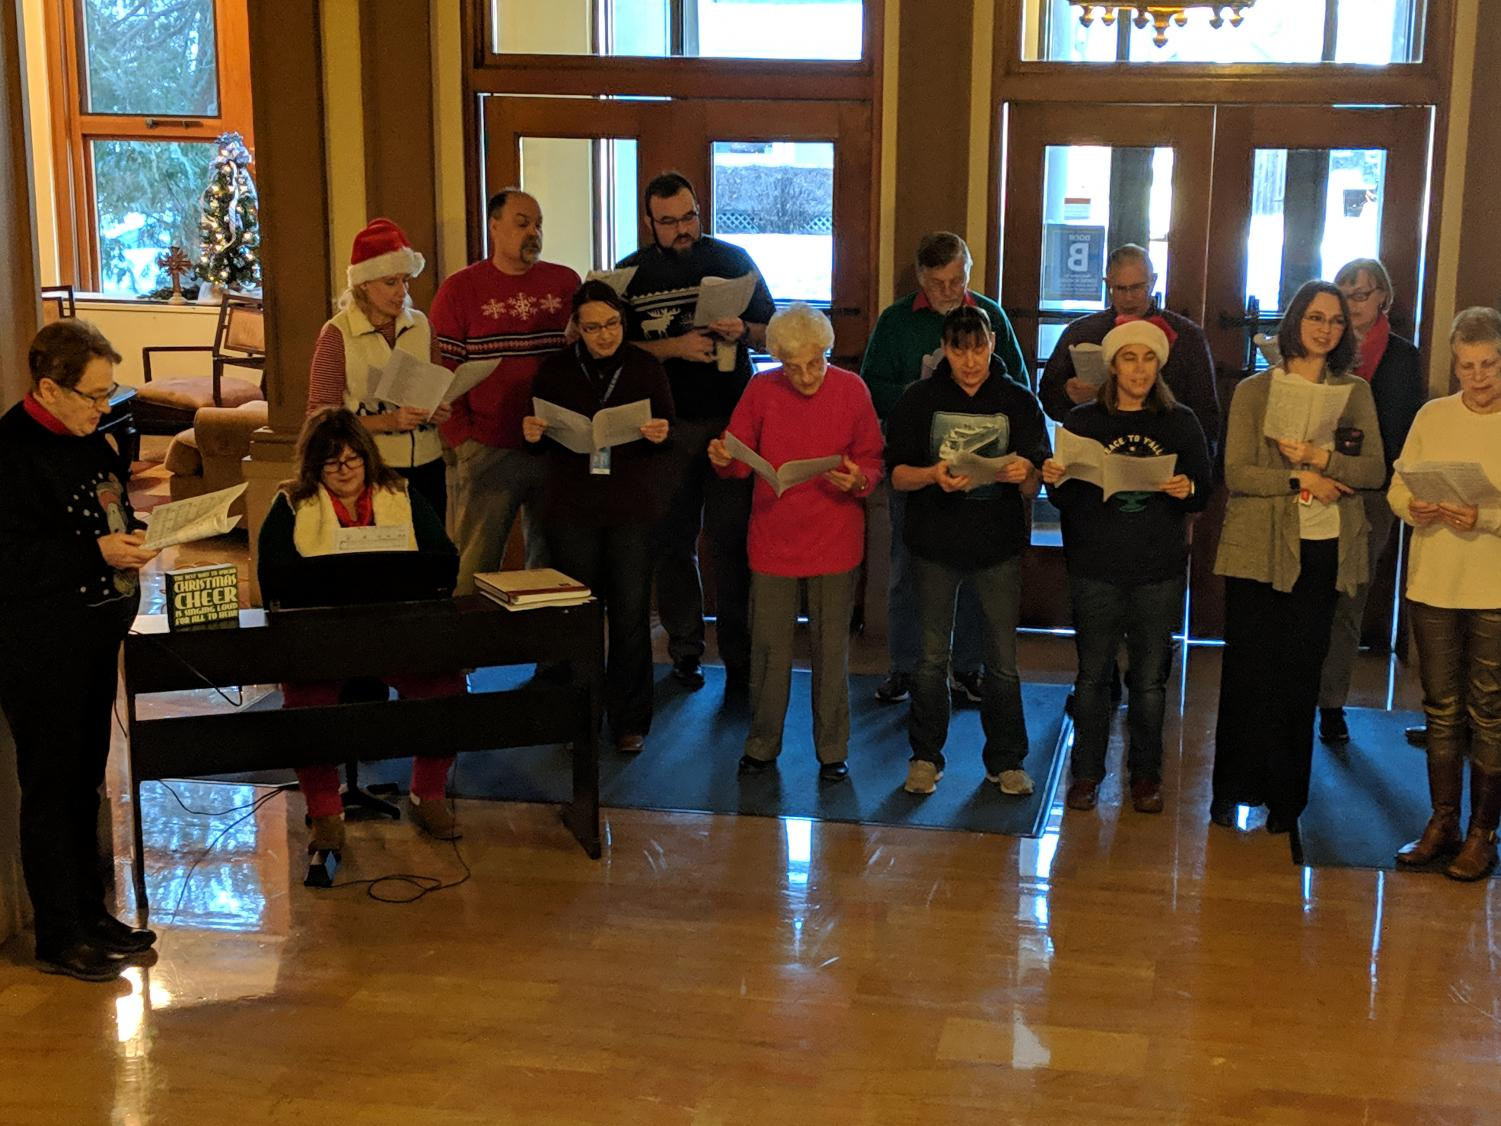 Current and former Cotter faculty and staff sing Christmas carols in the foyer on Monday.